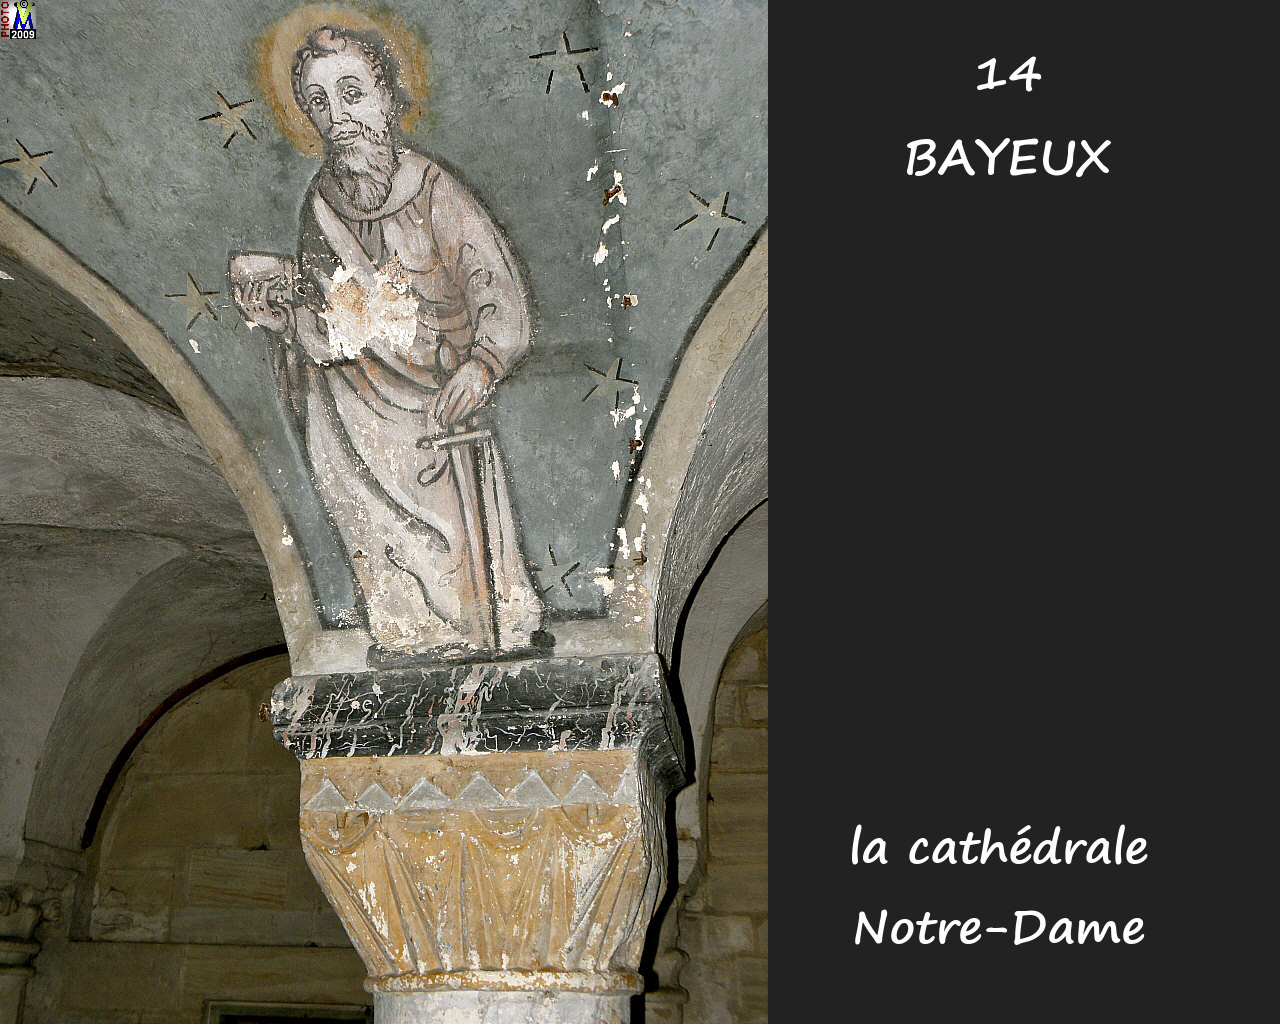 14BAYEUX_cathedrale_310.jpg